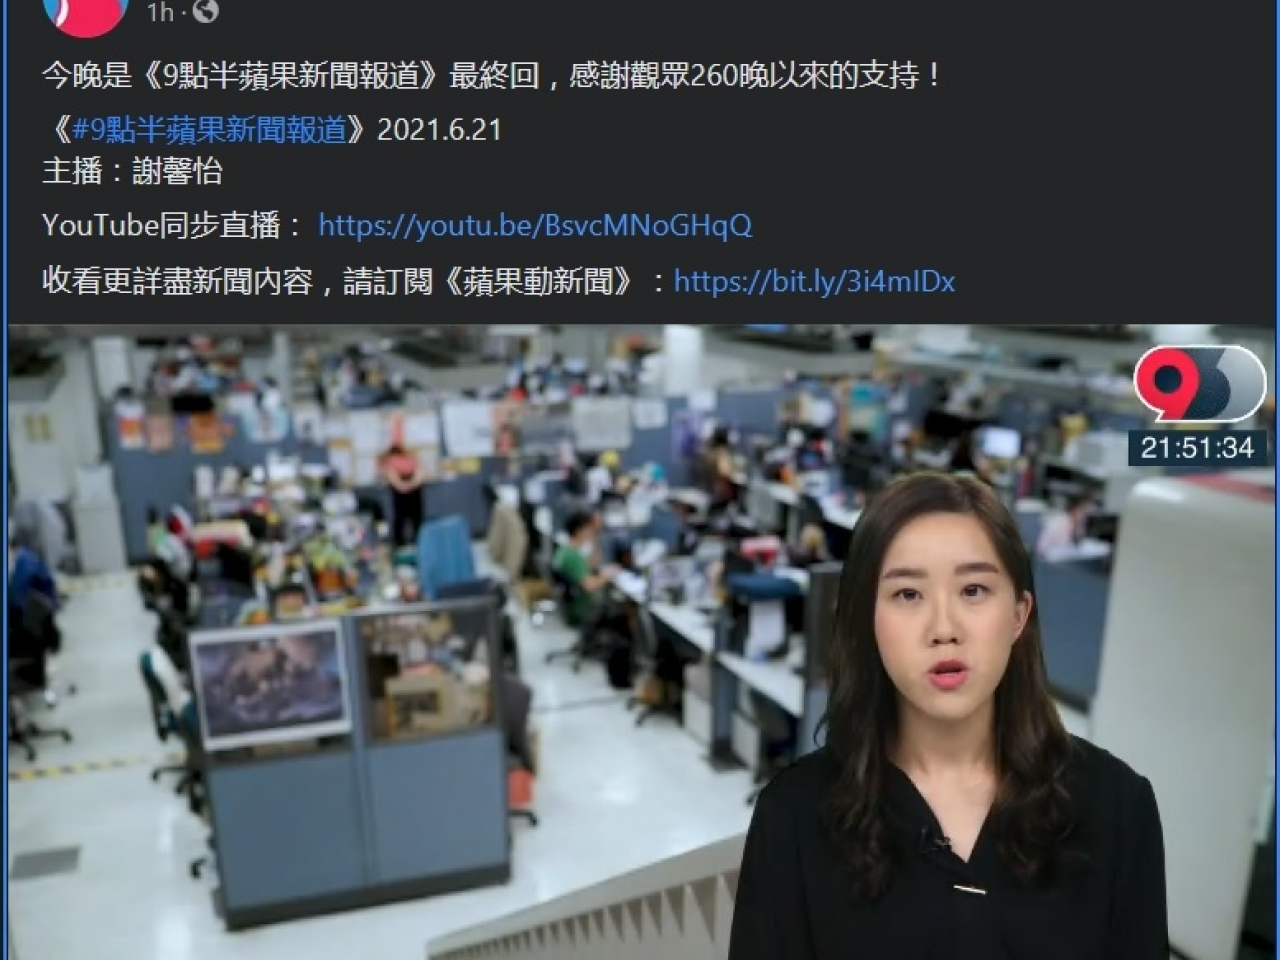 Apple Daily's online team urged journalists to remain steadfast and defend the truth. Photo: RTHK